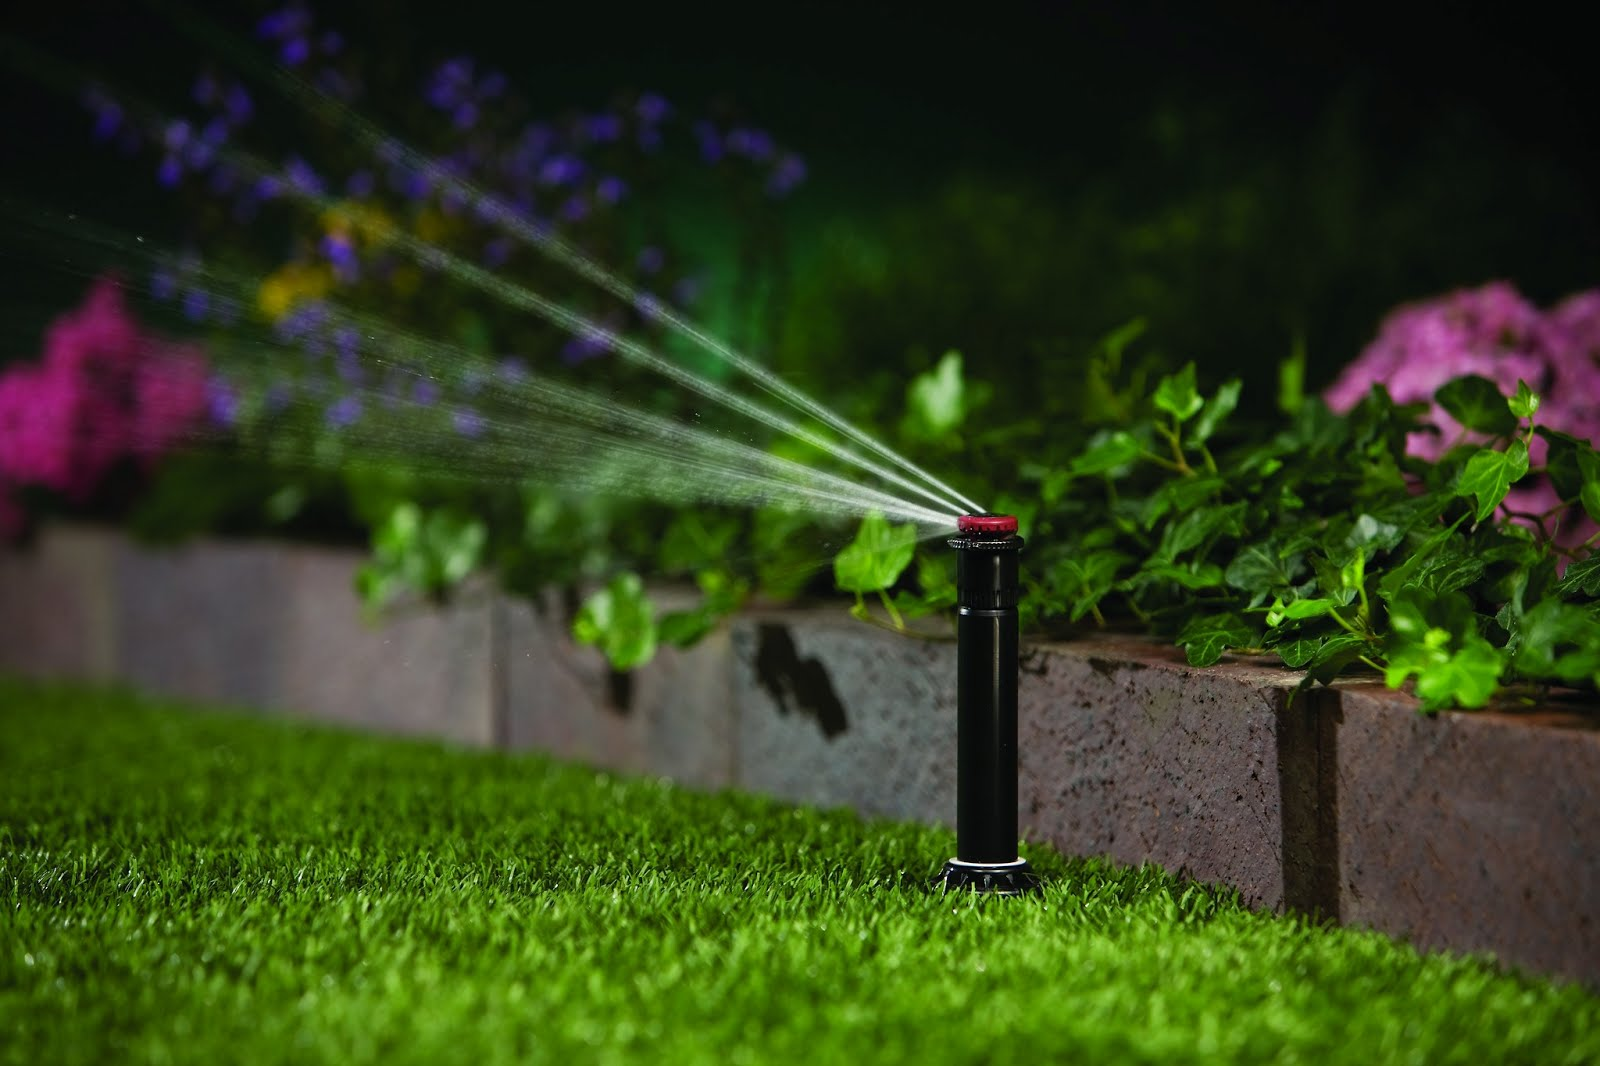 Sprinkler Services-Lewisville TX Professional Landscapers & Outdoor Living Designs-We offer Landscape Design, Outdoor Patios & Pergolas, Outdoor Living Spaces, Stonescapes, Residential & Commercial Landscaping, Irrigation Installation & Repairs, Drainage Systems, Landscape Lighting, Outdoor Living Spaces, Tree Service, Lawn Service, and more.